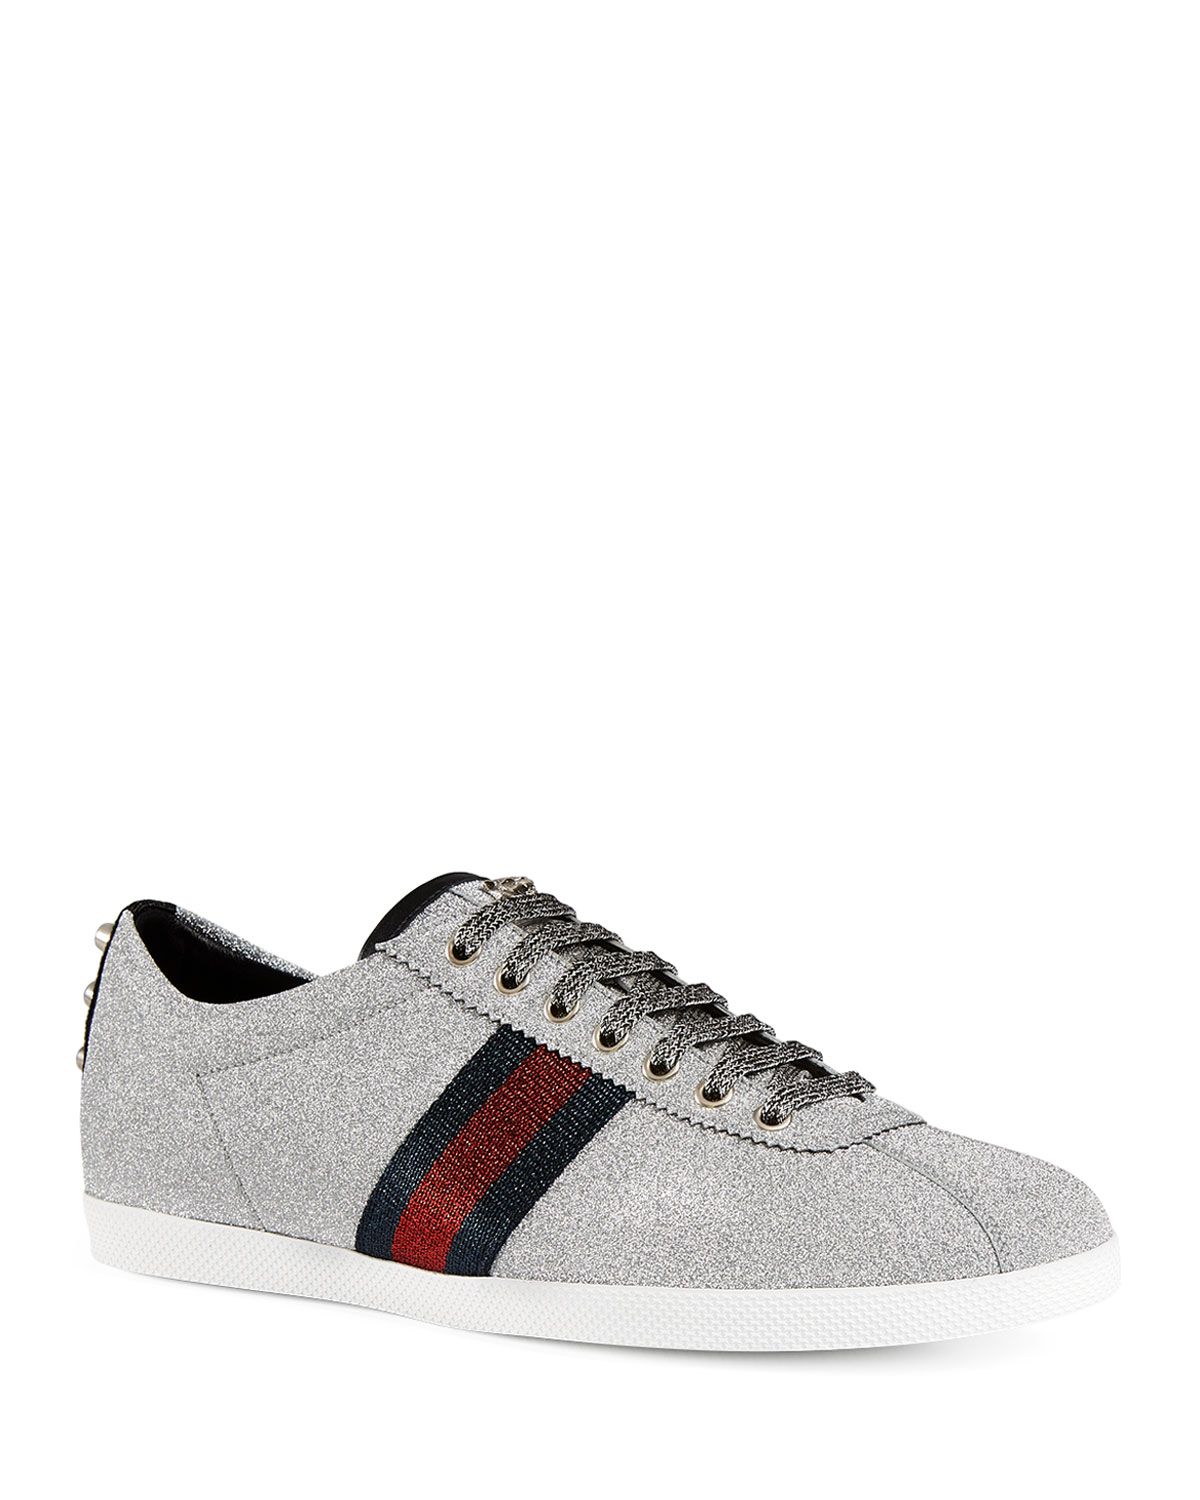 c633feb36dc Gucci Men s Bambi Web Low-Top Sneakers with Stud Detail